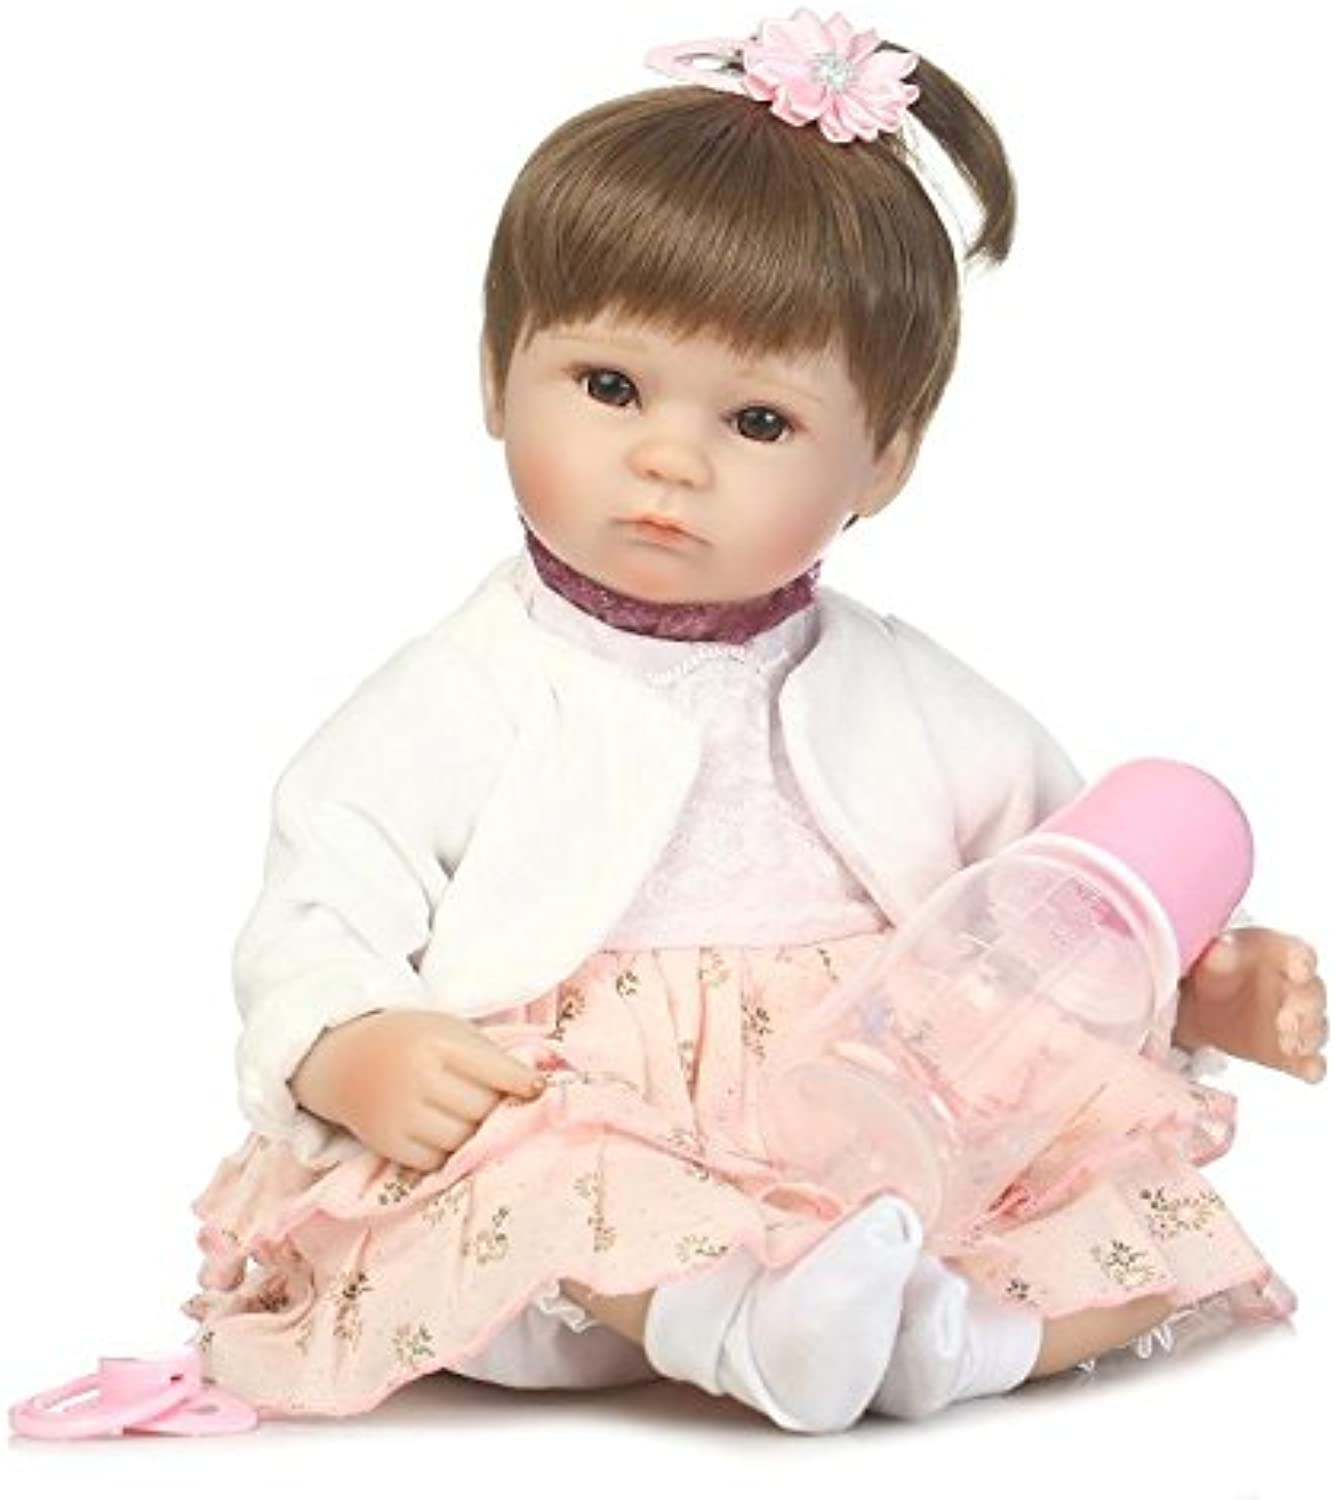 NPK Collection Real Handmade Playhouse Doll Toys Gentle Touch Soft Body 18inch 40cm Silicone Girl Reborn Baby Dolls Newborn Babies Birthday Gift